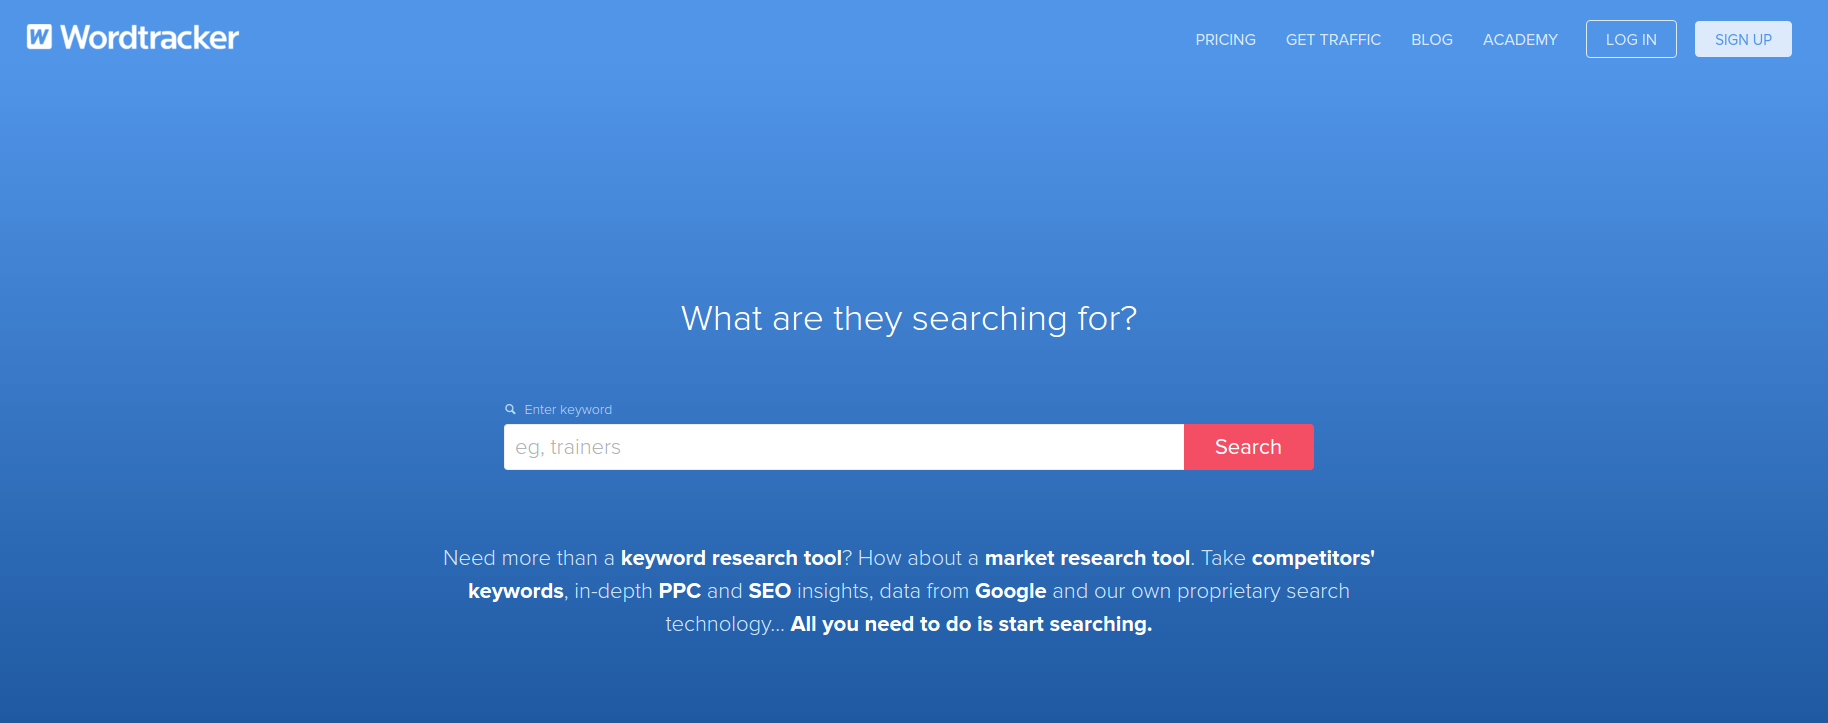 Wordtracker Free Keyword Research Tool